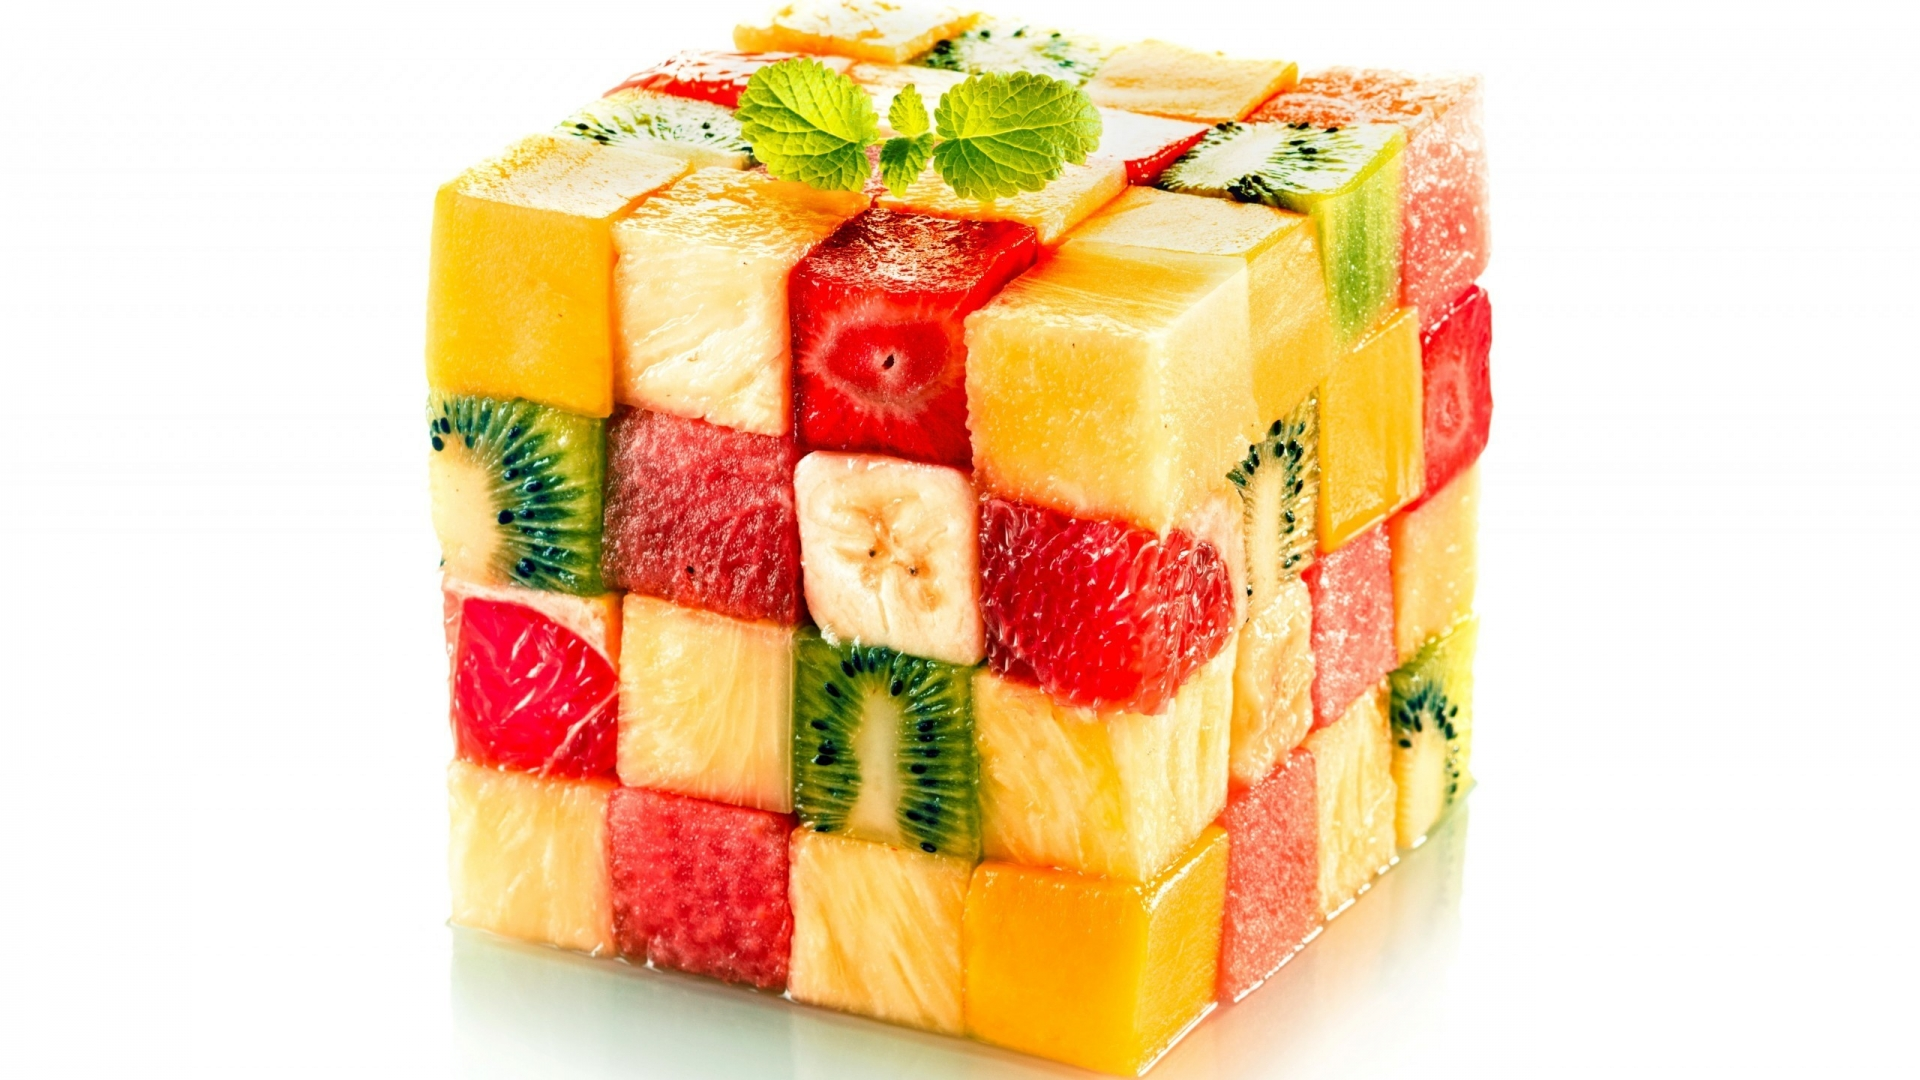 Fruit Salad Cube for 1920 x 1080 HDTV 1080p resolution